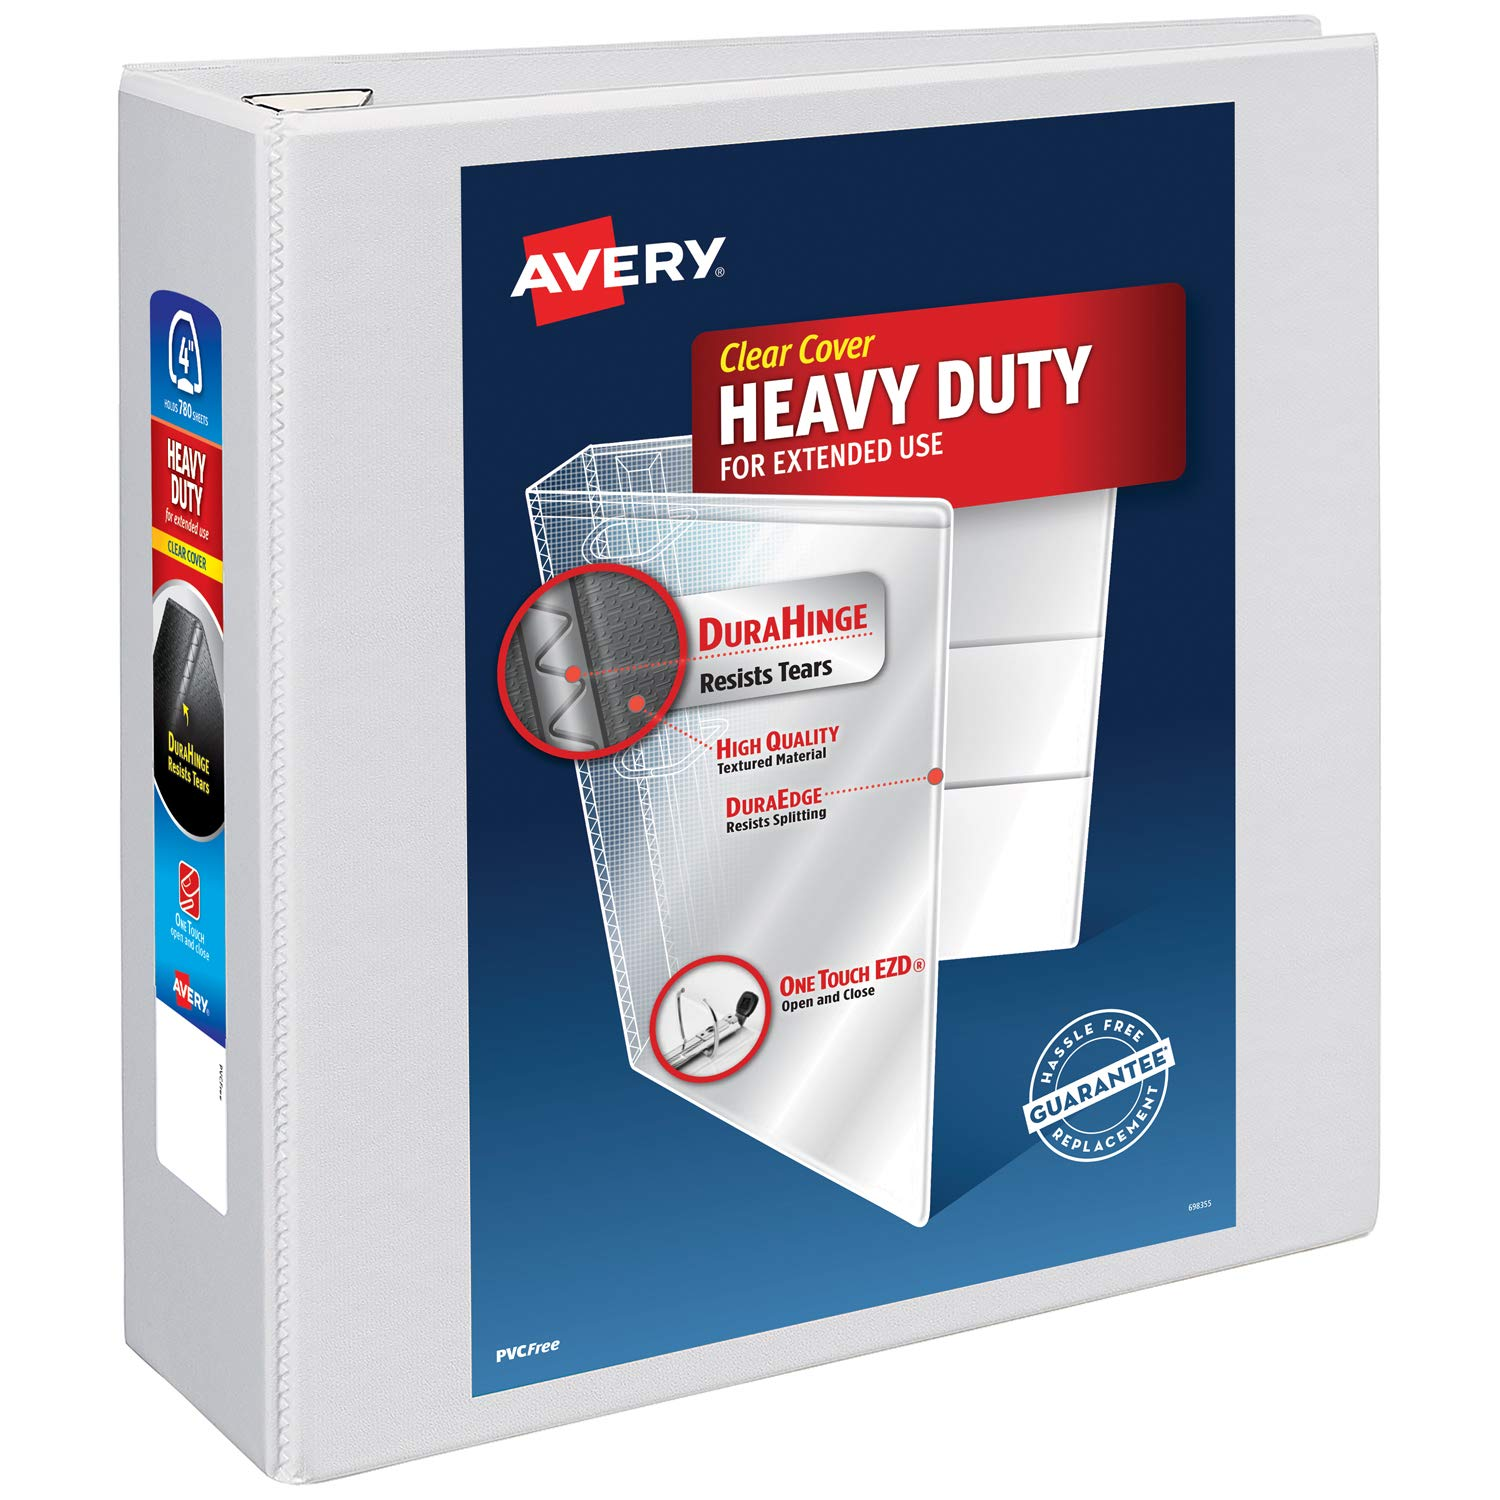 Avery Heavy Duty View 3 Ring Binder, 4'' One Touch EZD Ring, Holds 8.5'' x 11'' Paper, 1 White Binder (79104) by AVERY